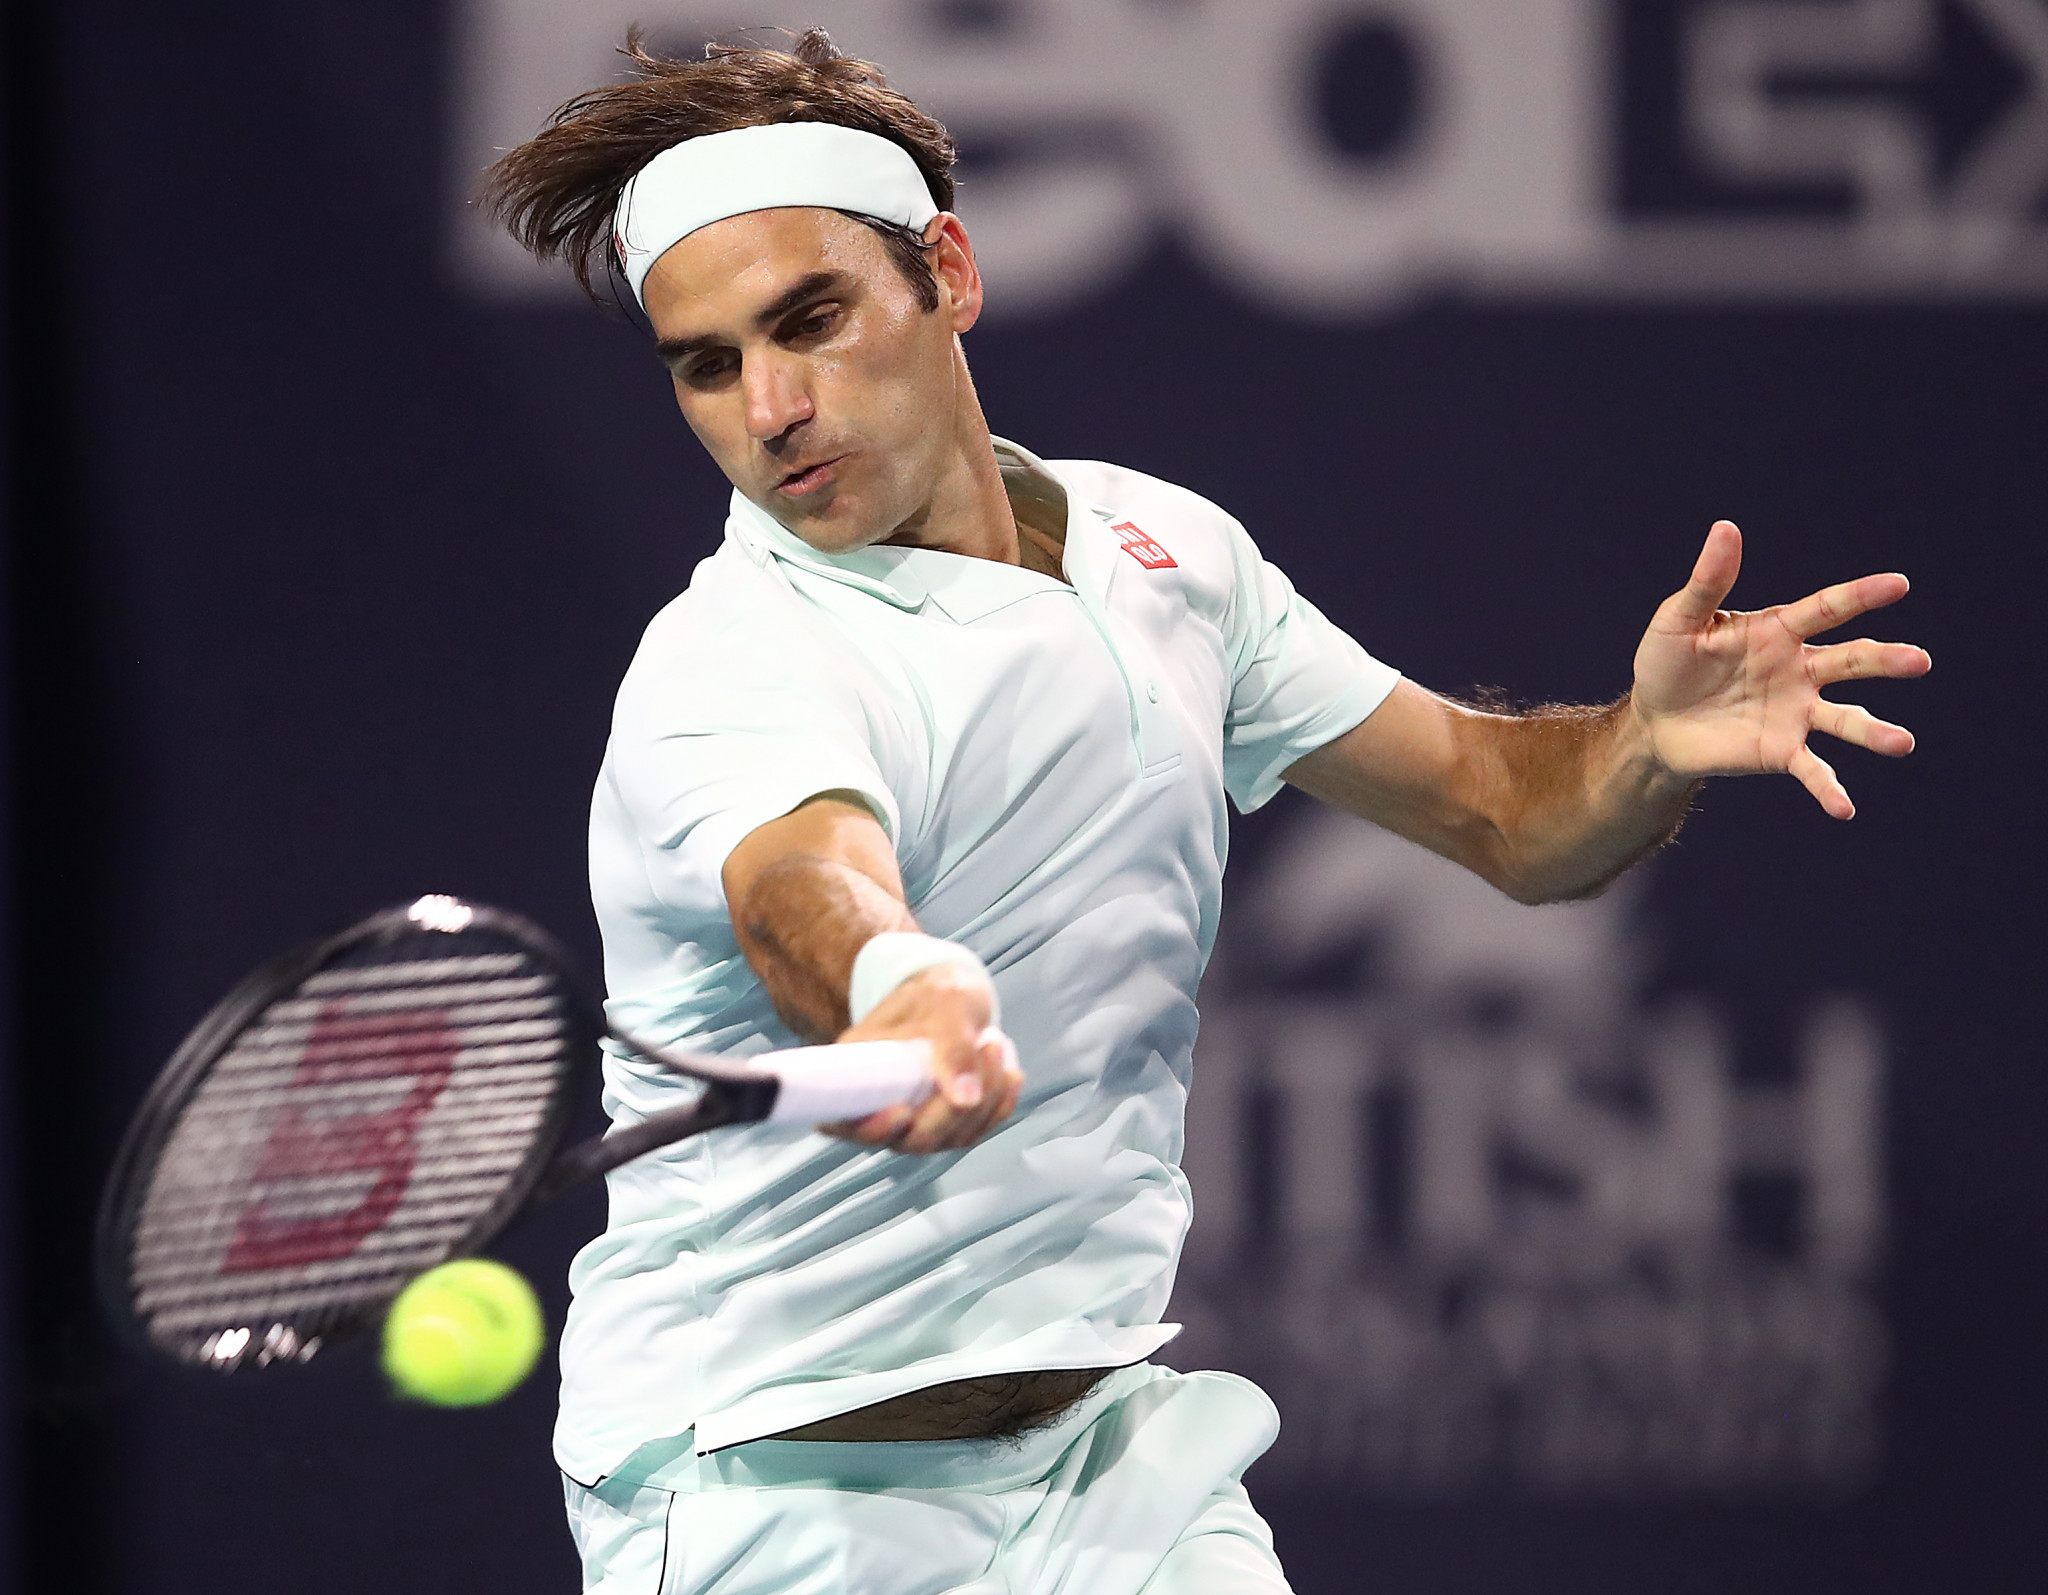 Former world number one Federer battles past qualifier Albot in Miami Open